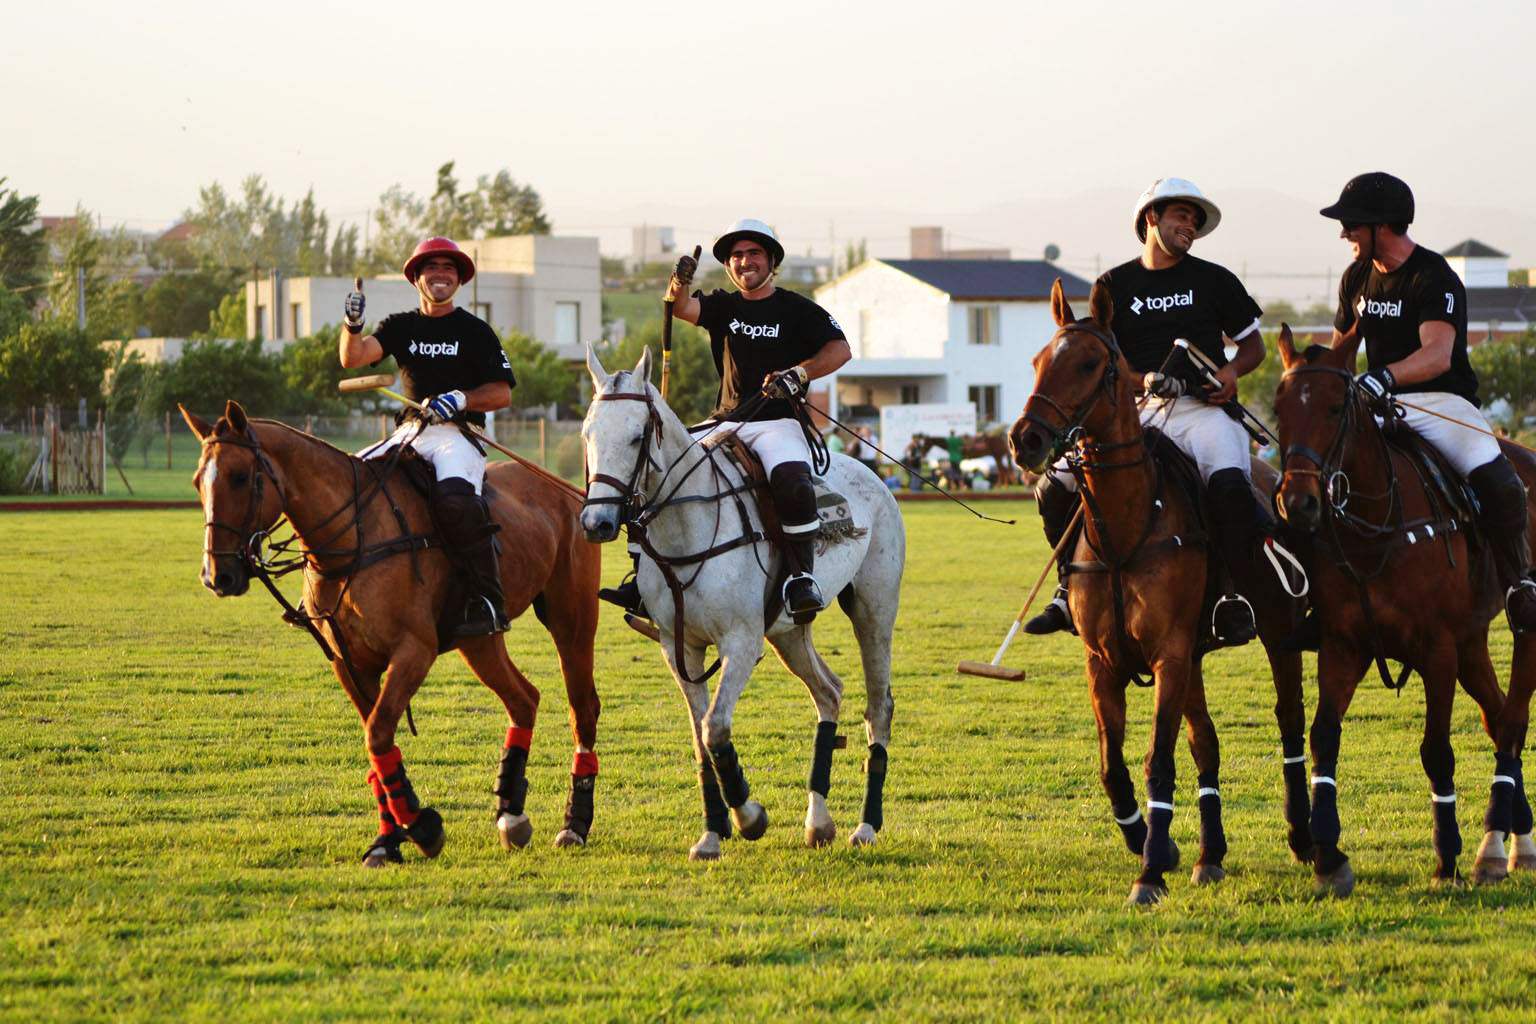 How to travel while working the right way? Play polo in Argentina with a company t-shirt on.